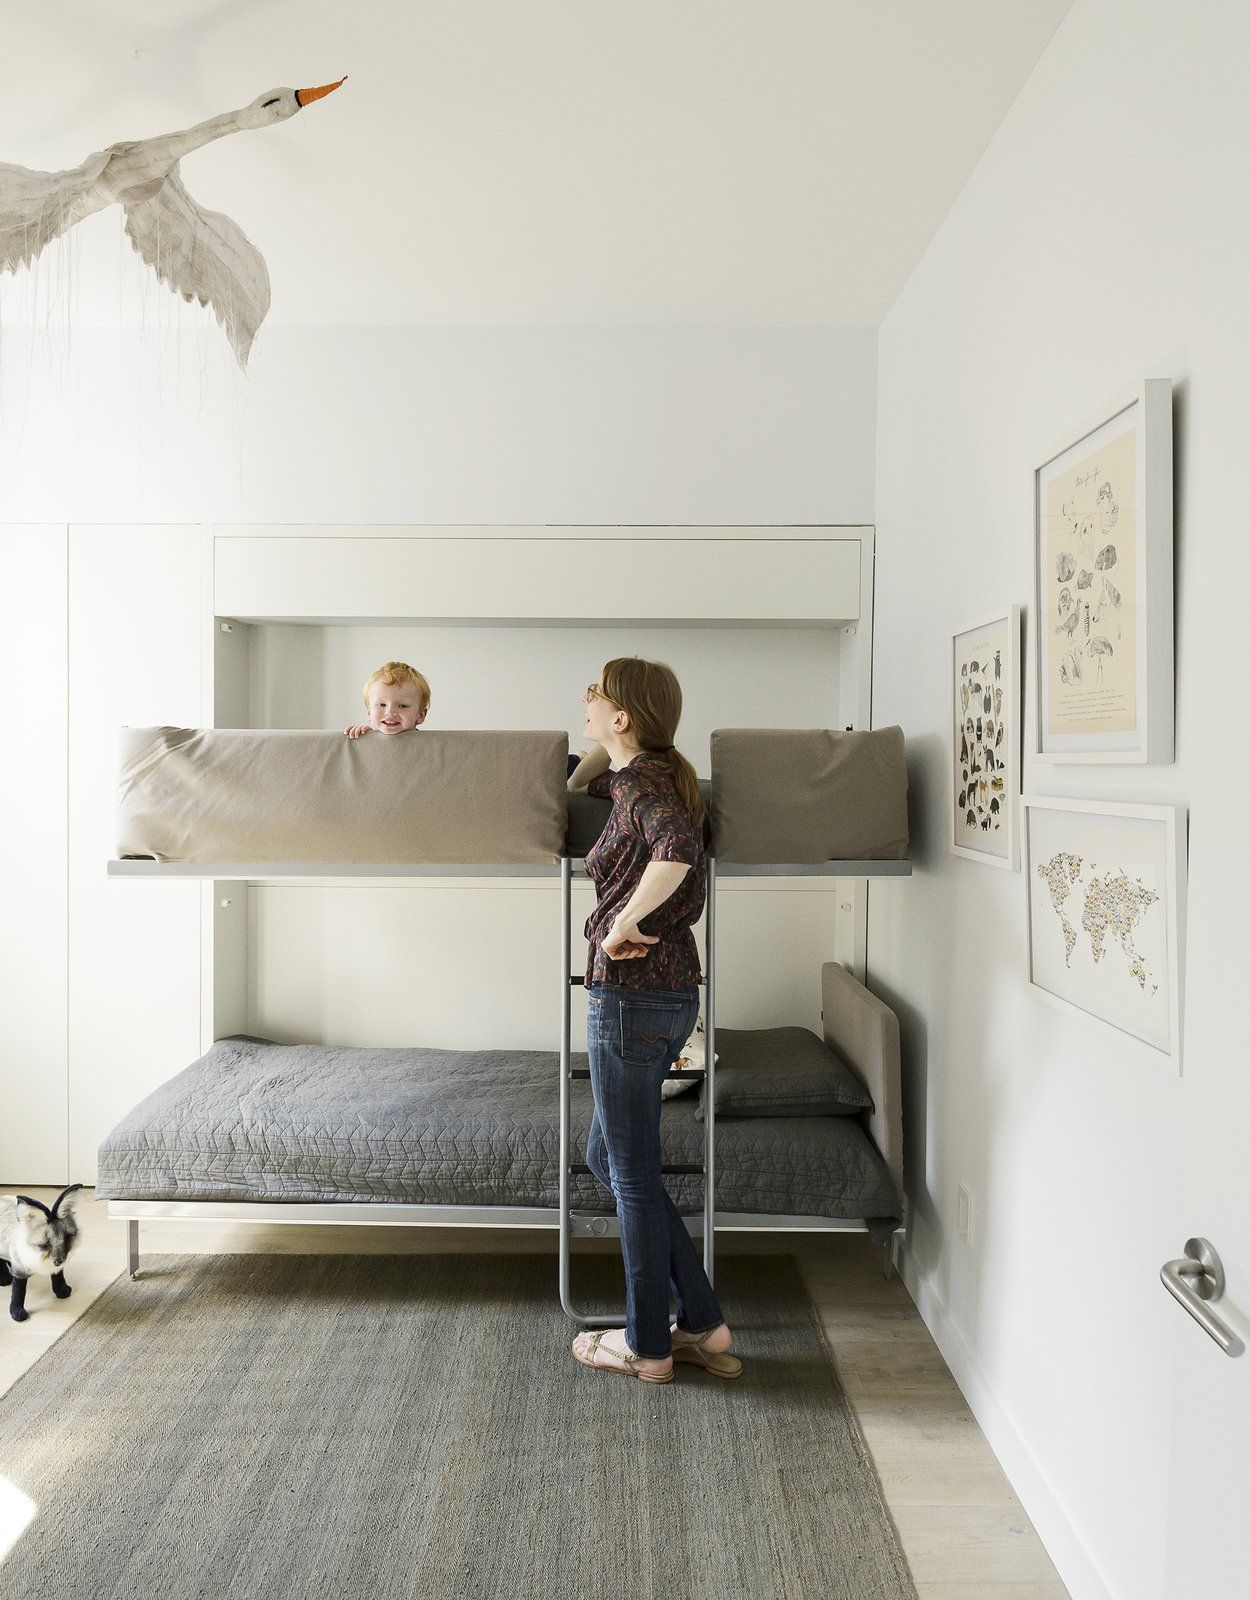 ways to childproof your home without foregoing style in